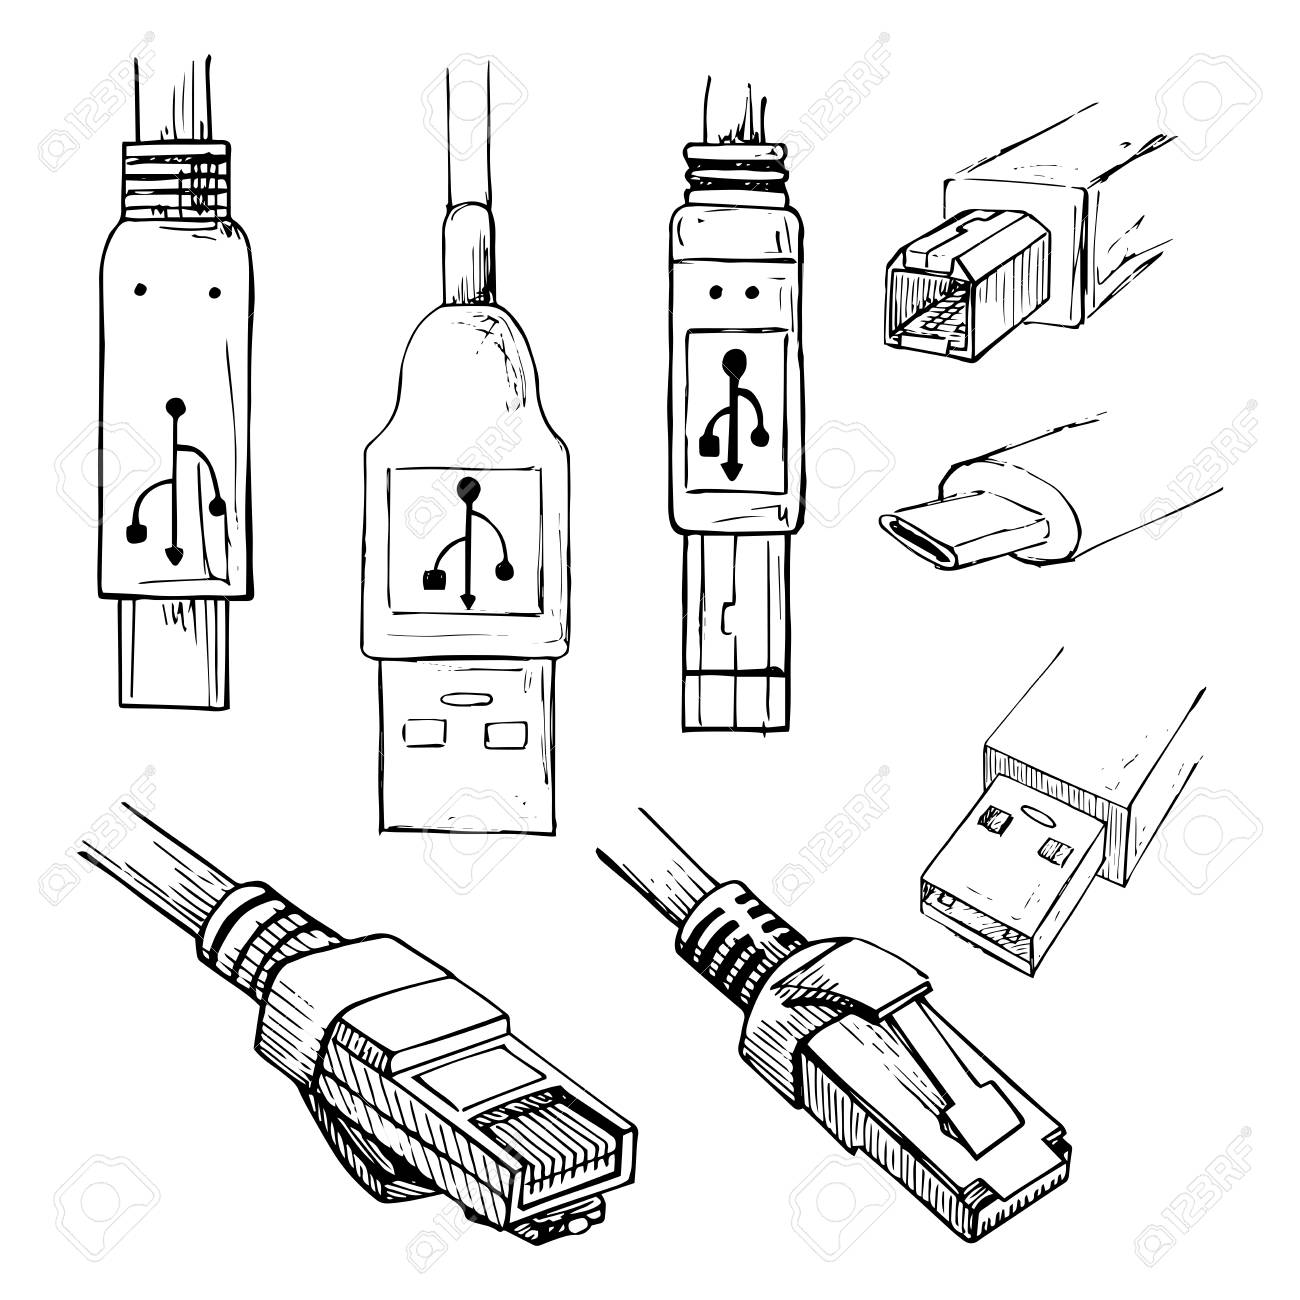 Set of data connector plug different usb types and rj45 8p8c